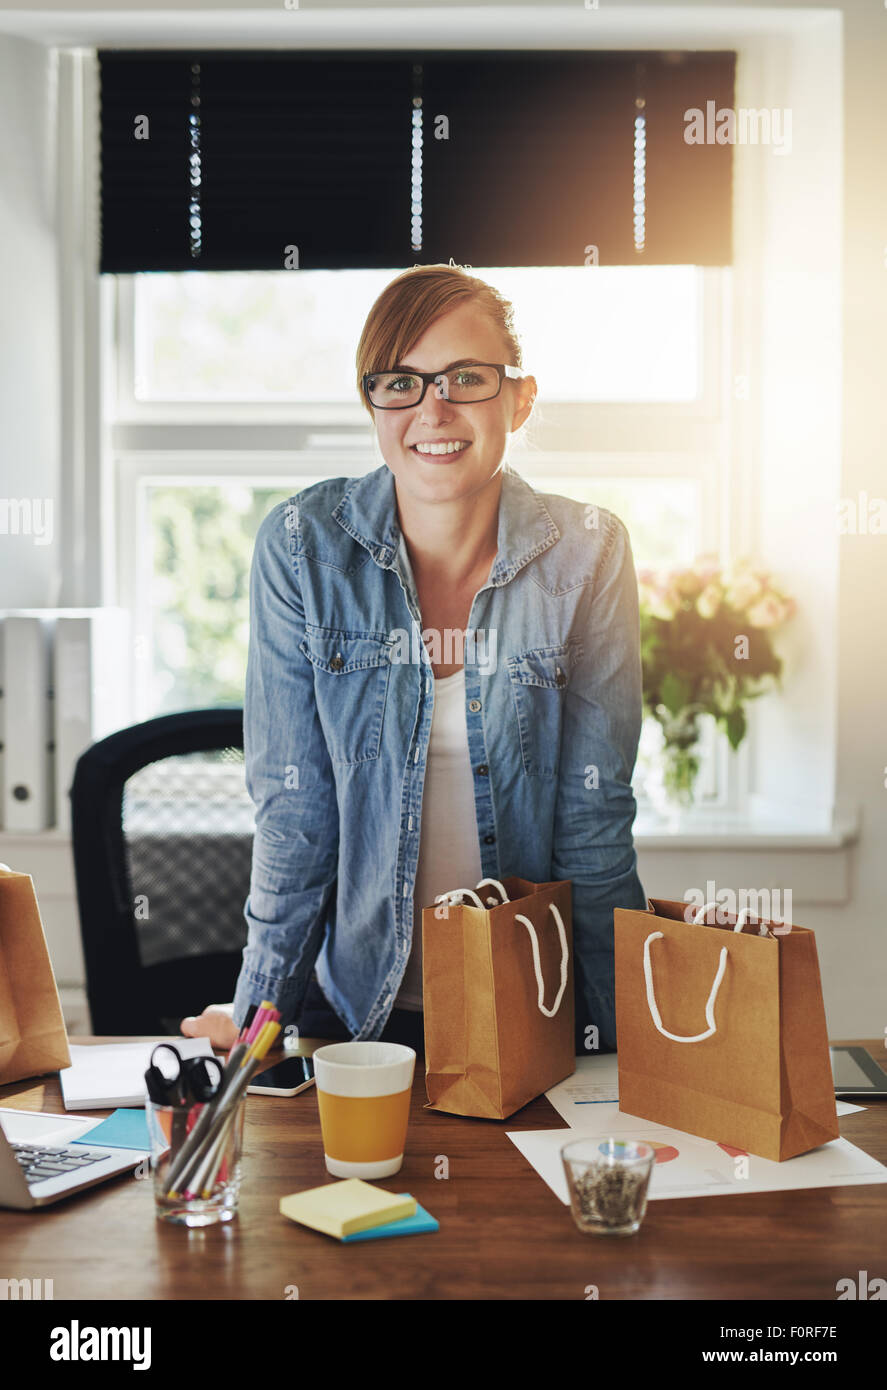 Confident business woman at office debout au-dessus de 24 Photo Stock